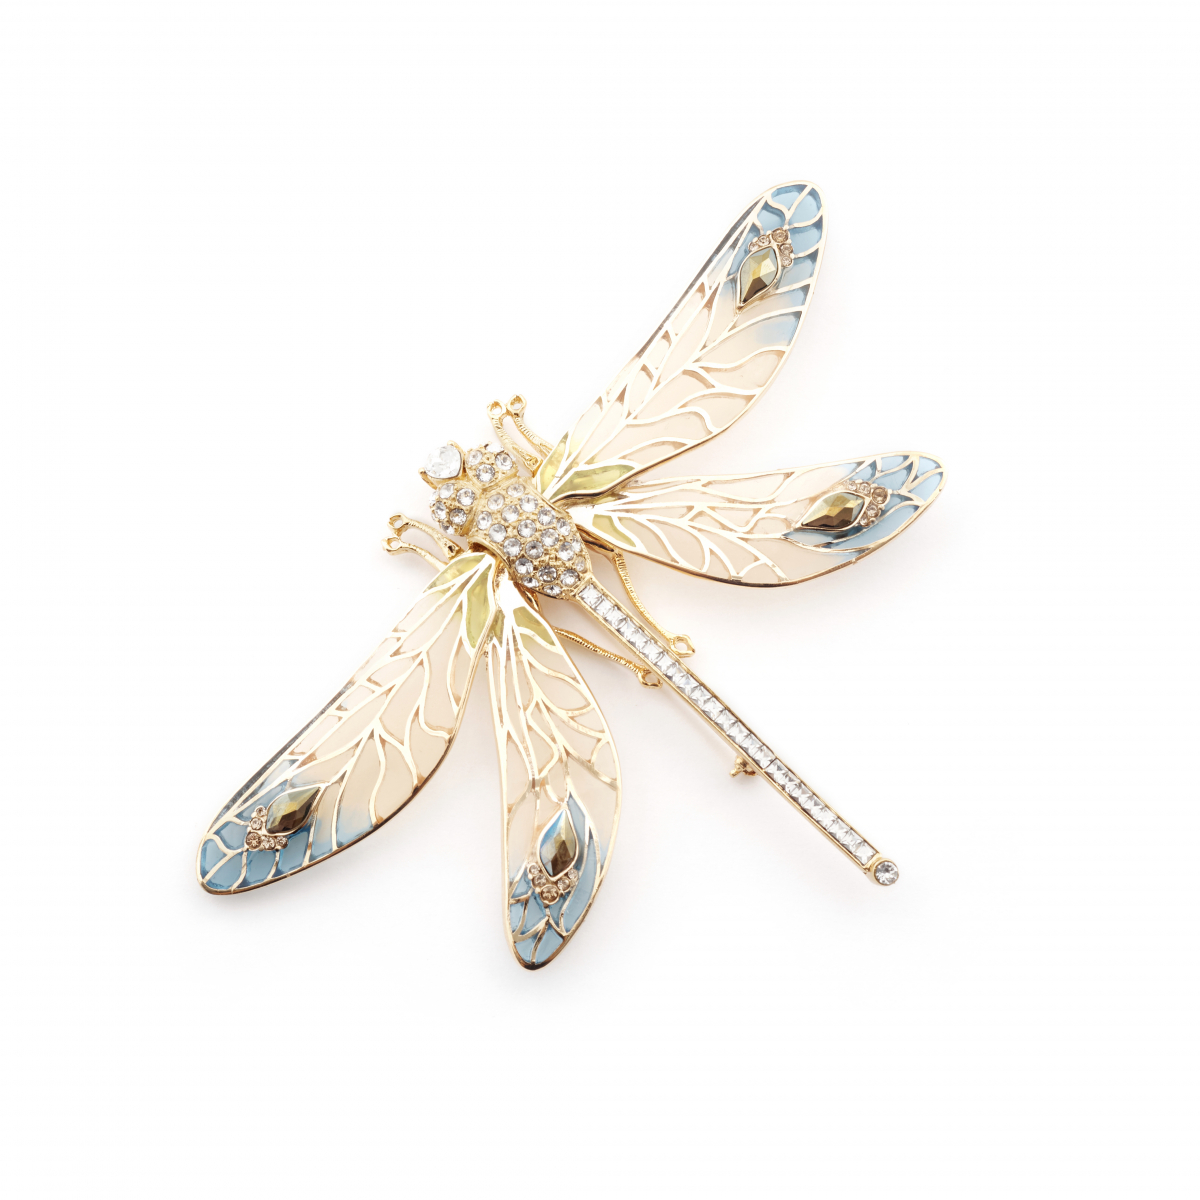 Dragonfly Statement Brooch